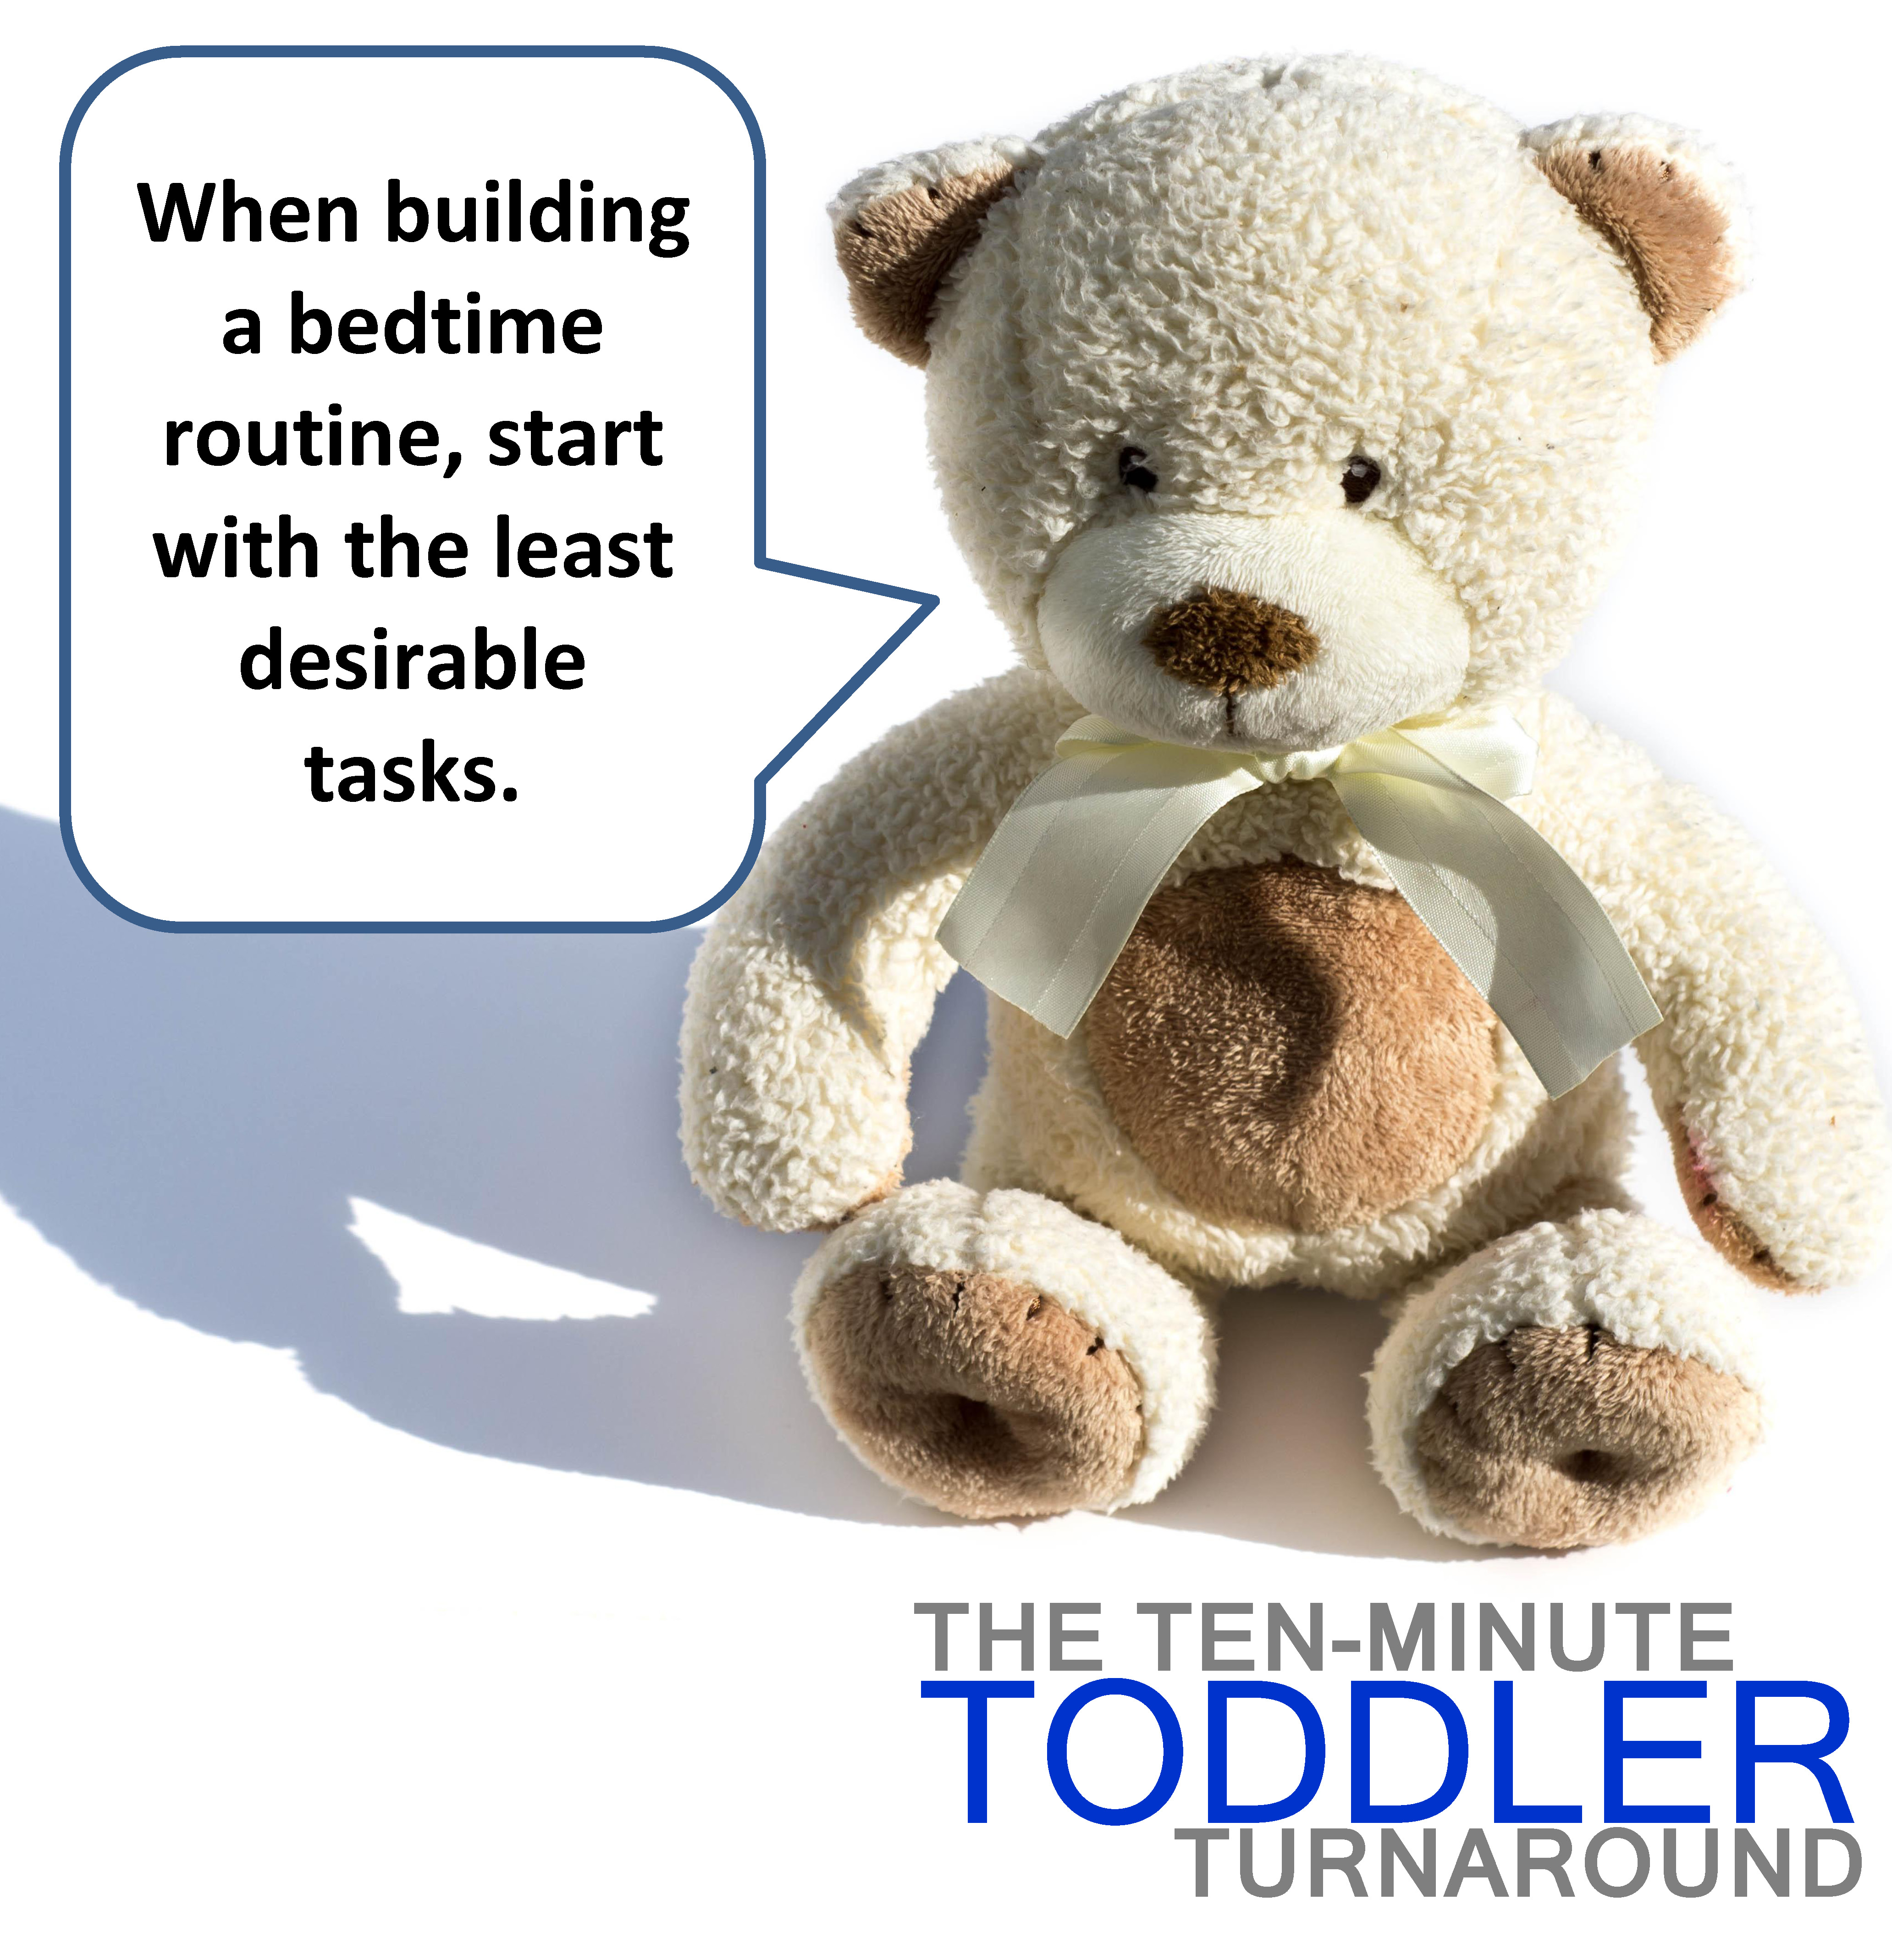 Toddler Quotes Tenminute Toddler Turnaround  Improving Sleep  Mental Wellness